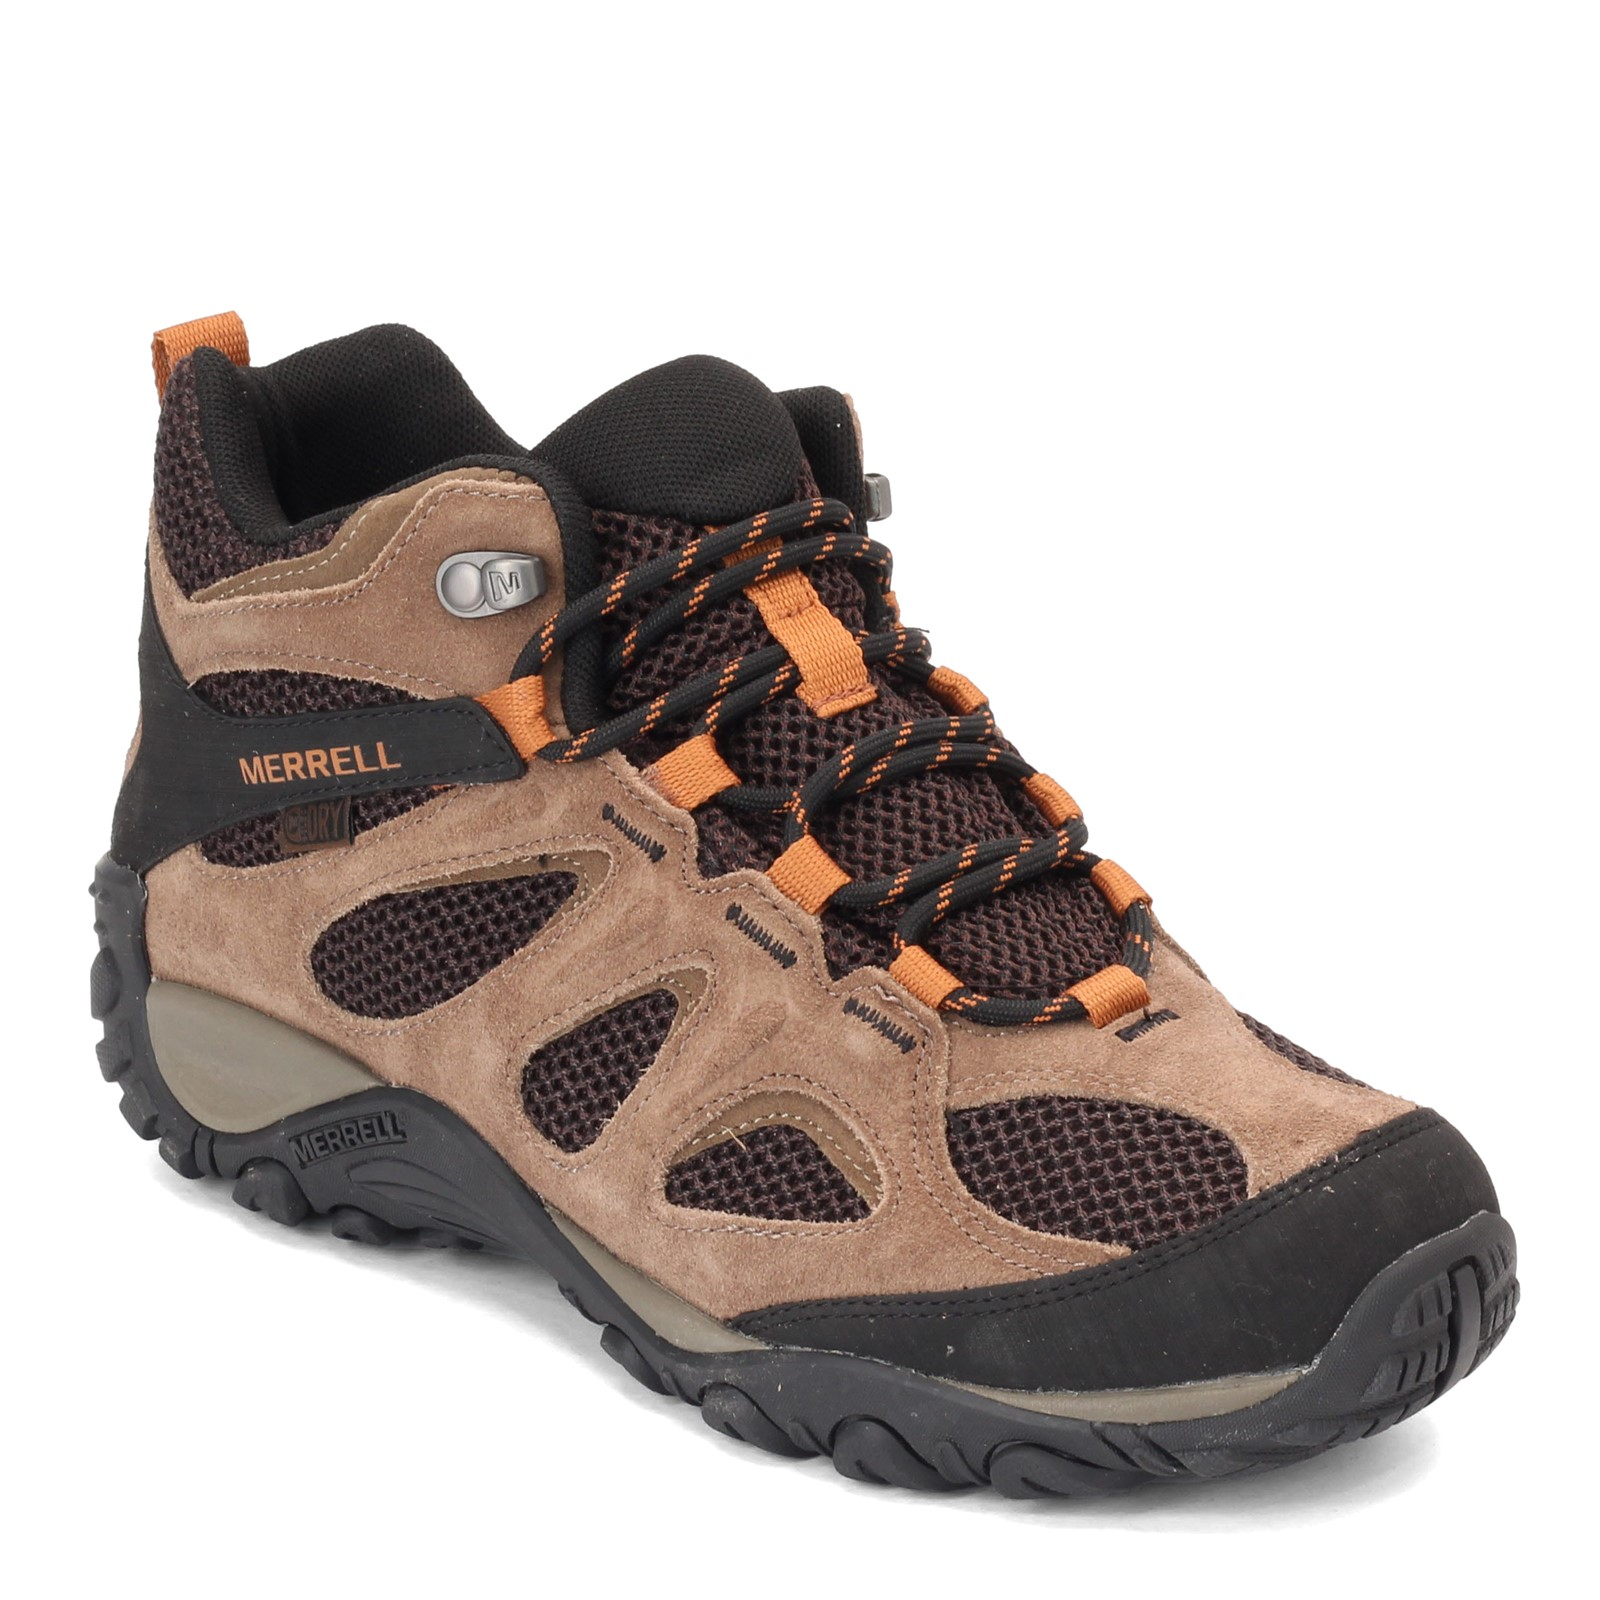 sportskor fabriksgiltig billiga priser Men's Merrell, Yokota 2 Mid Waterproof Boot - Wide Width | Peltz Shoes